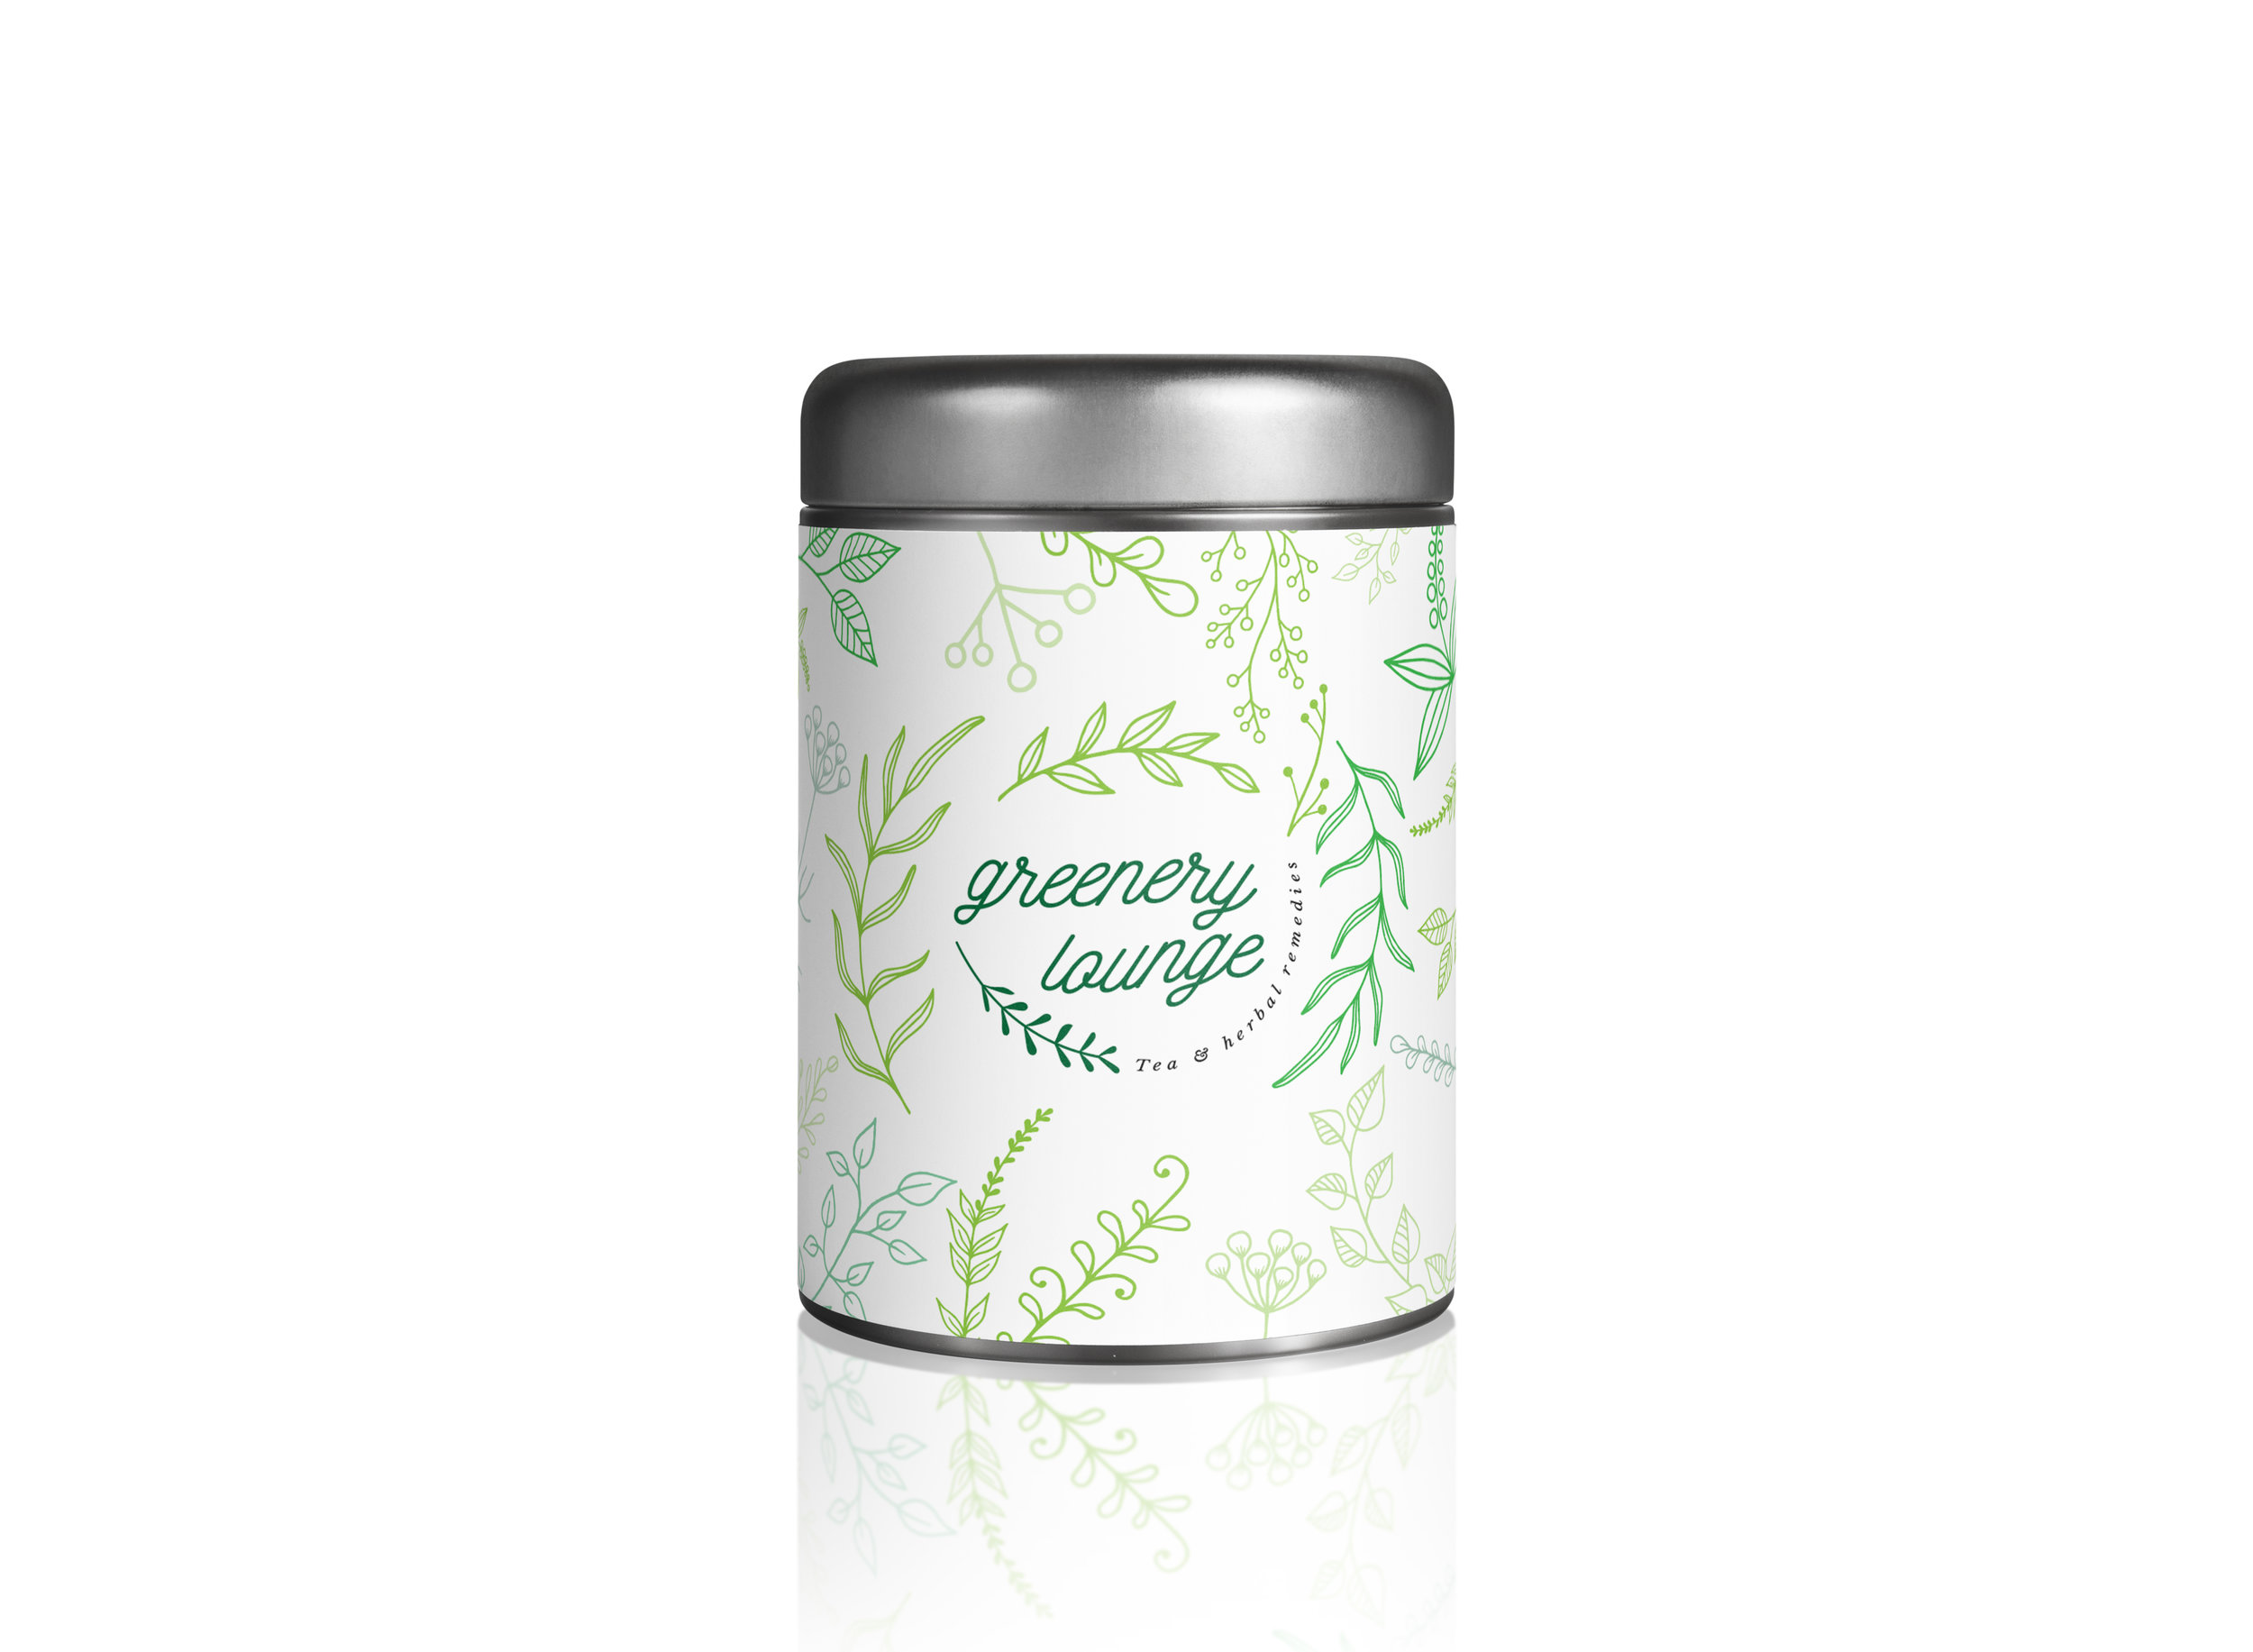 Tin Container Packaging MockUp.jpg